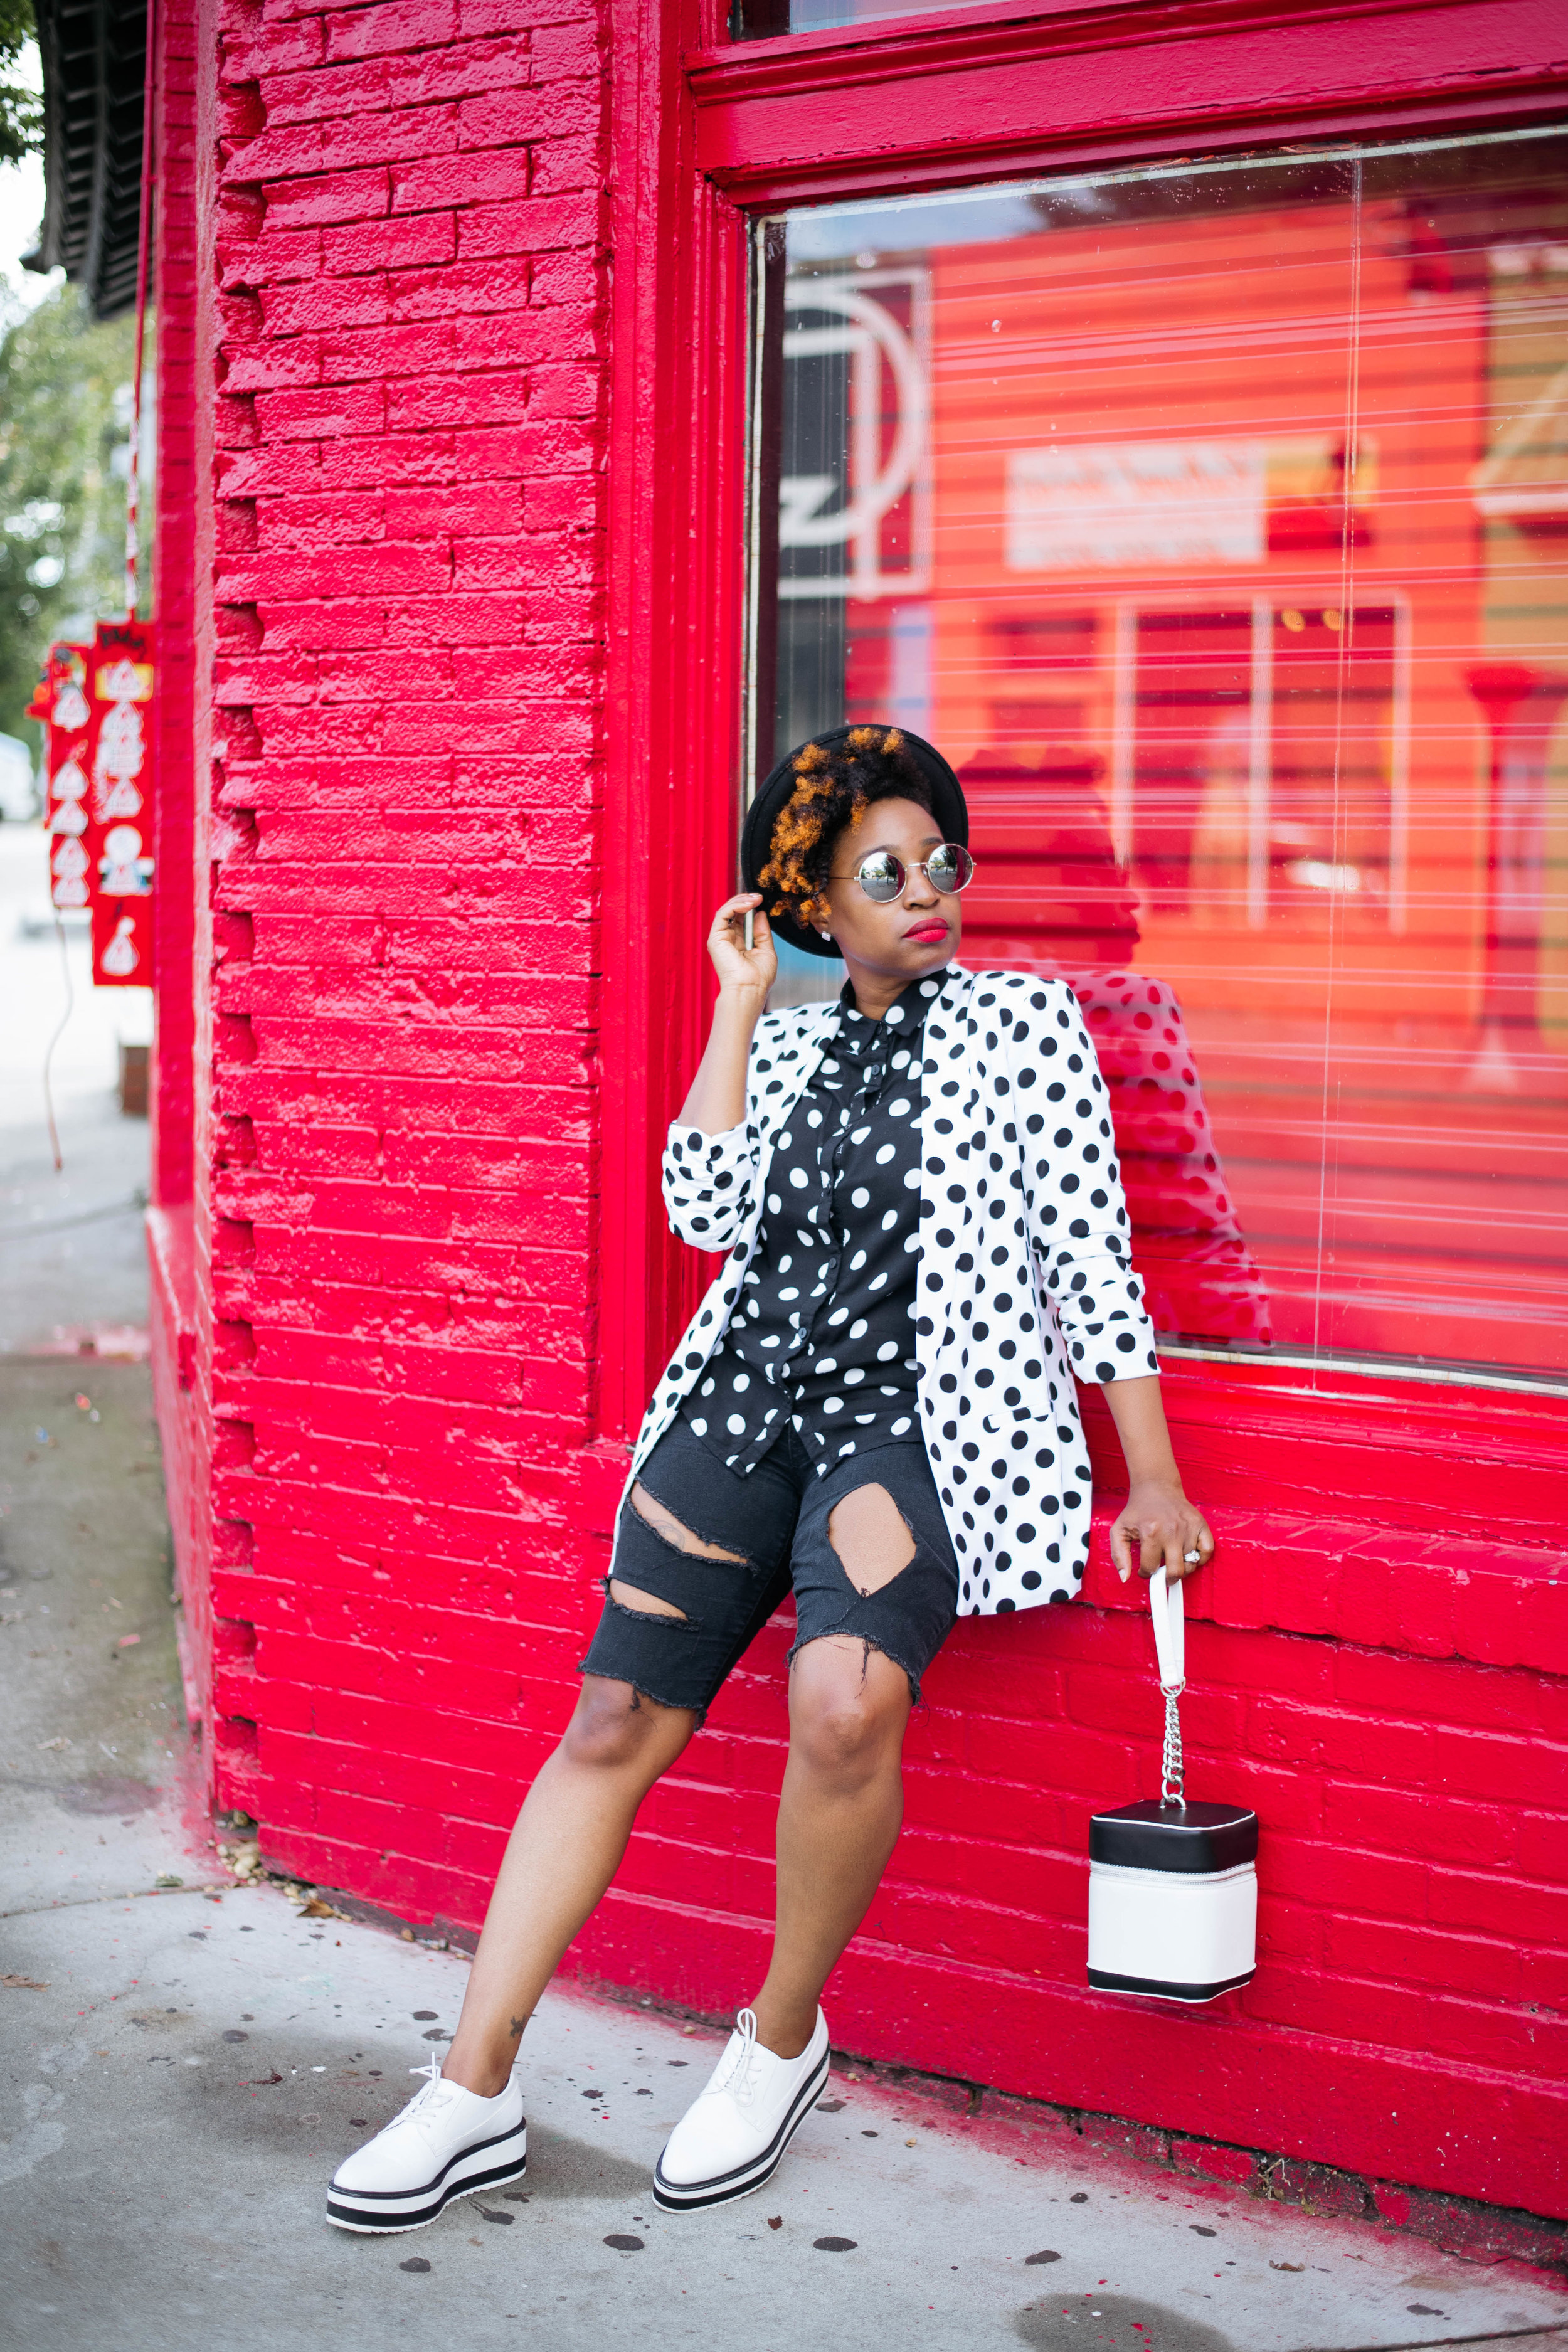 BLOG - Check out the blog for the latest in fashion tips and more!